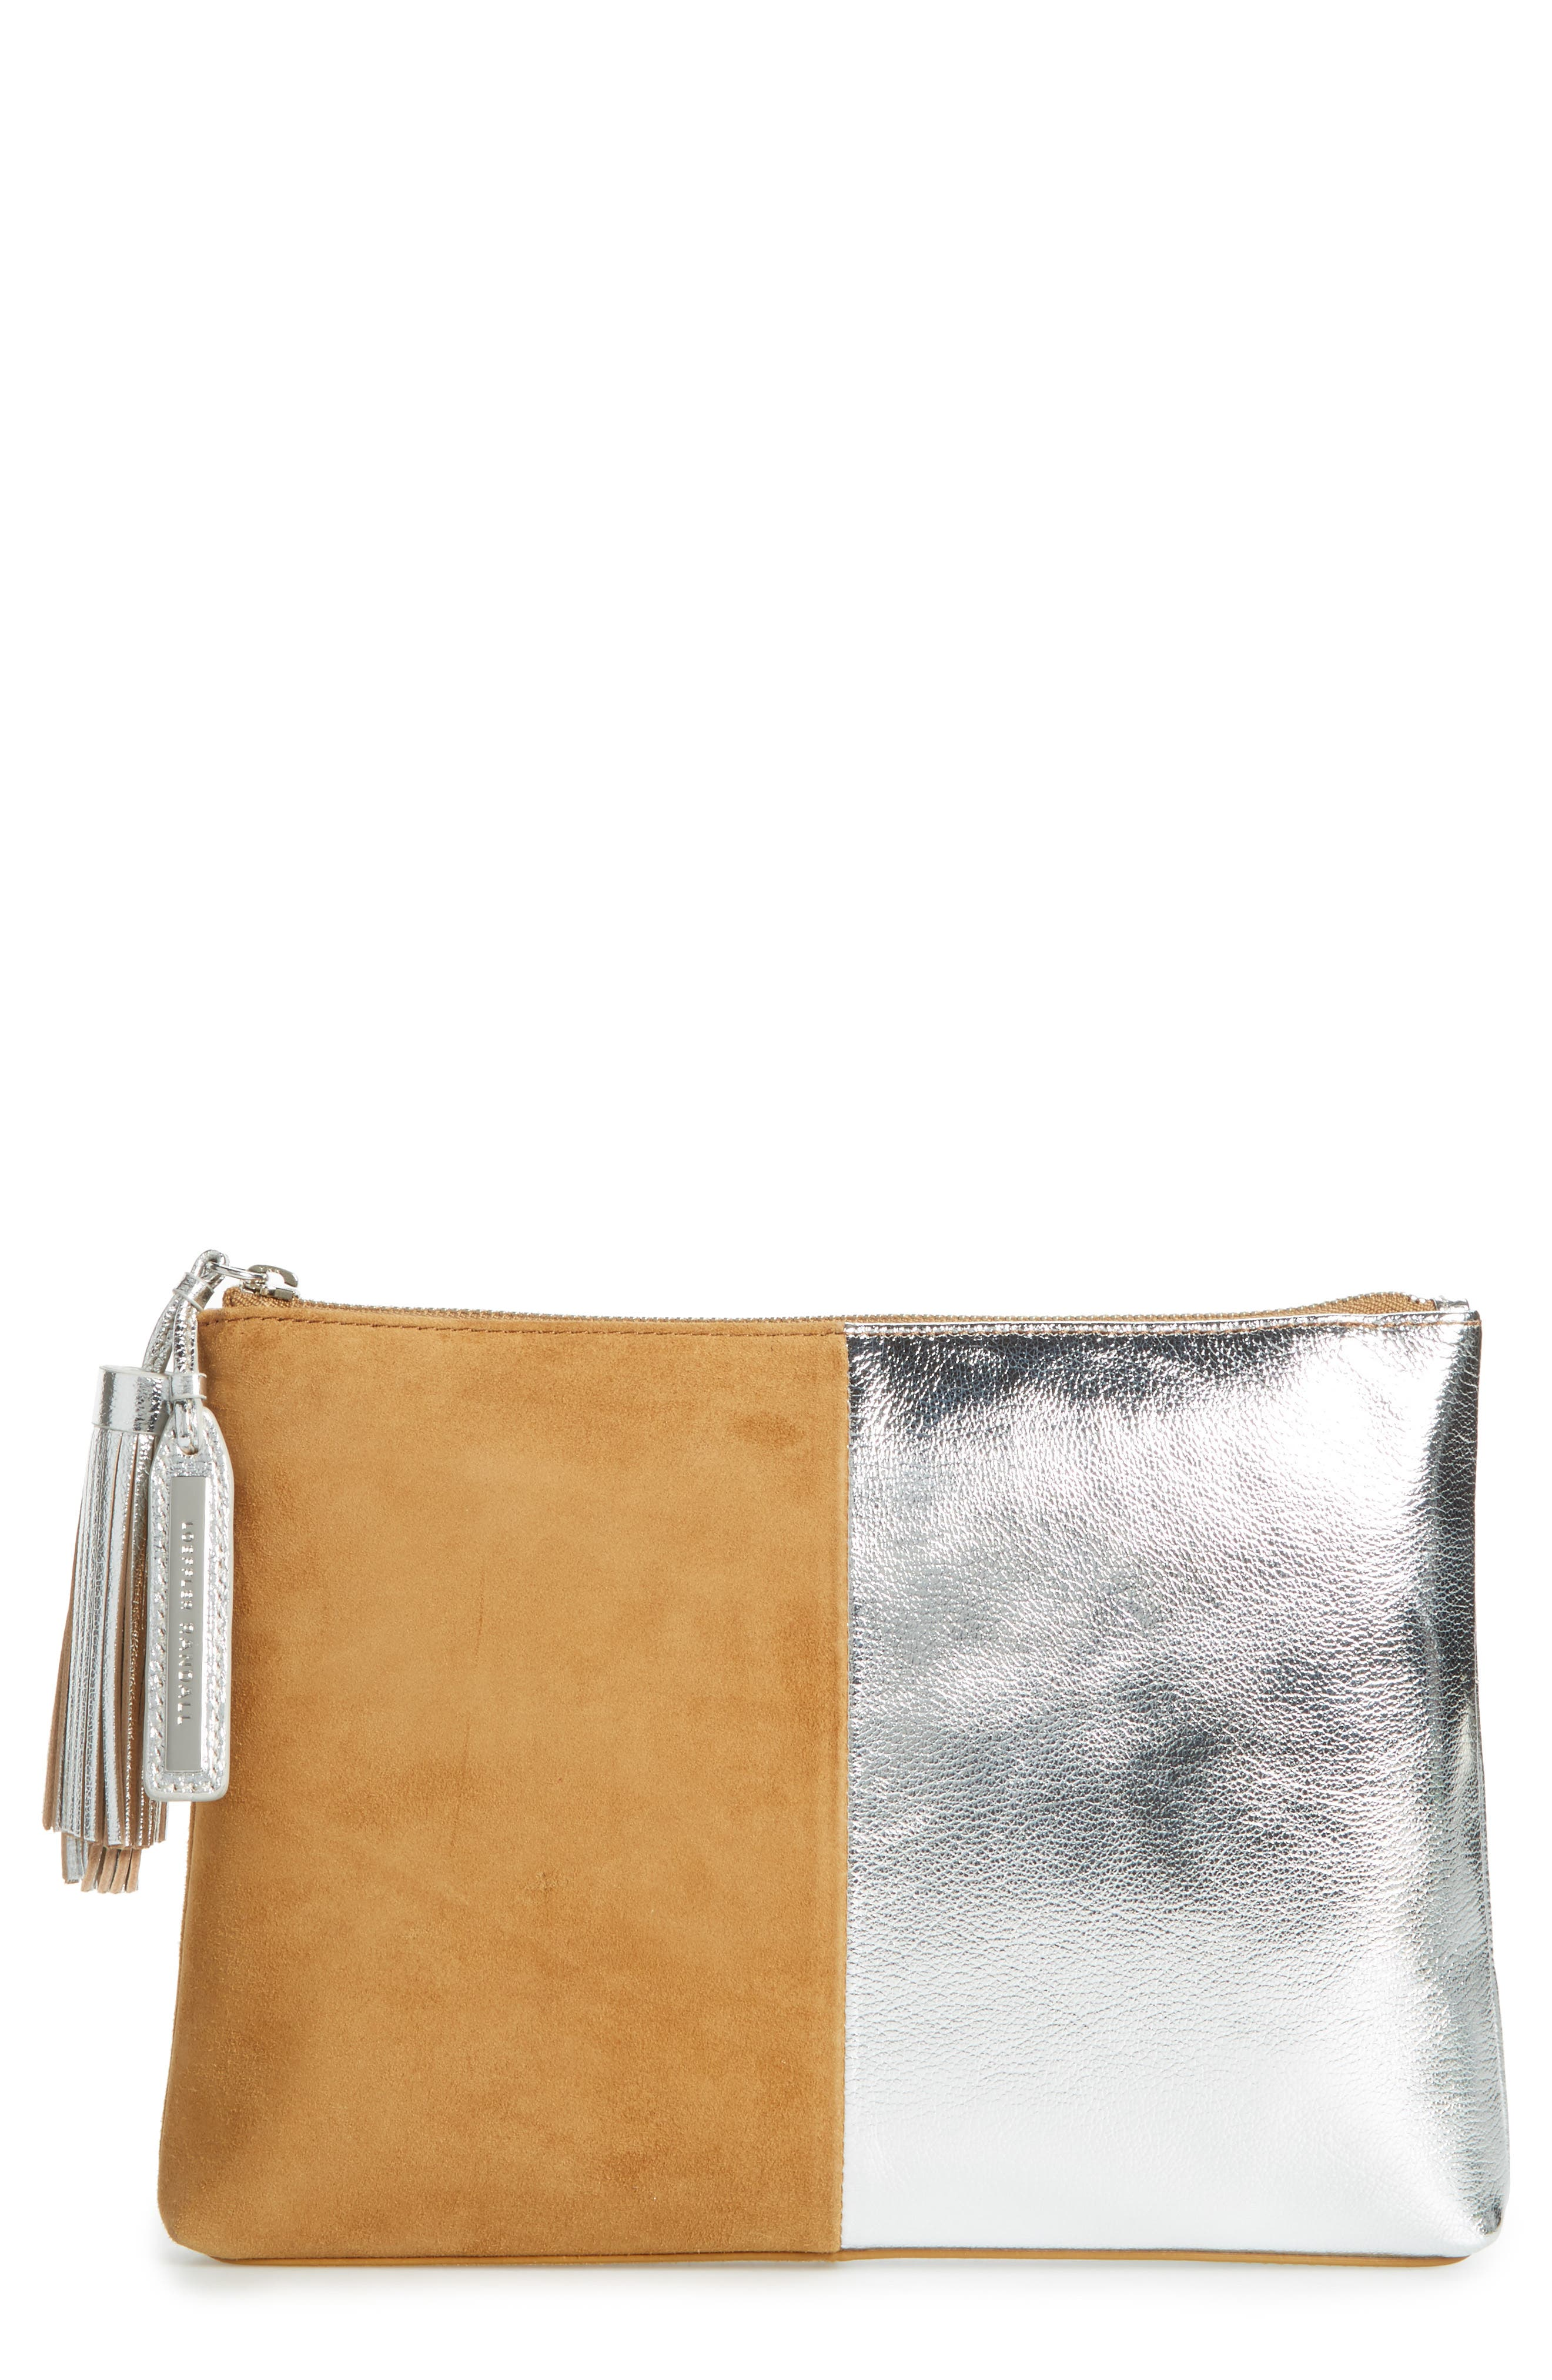 Tassel Metallic Leather & Suede Pouch,                             Main thumbnail 1, color,                             269